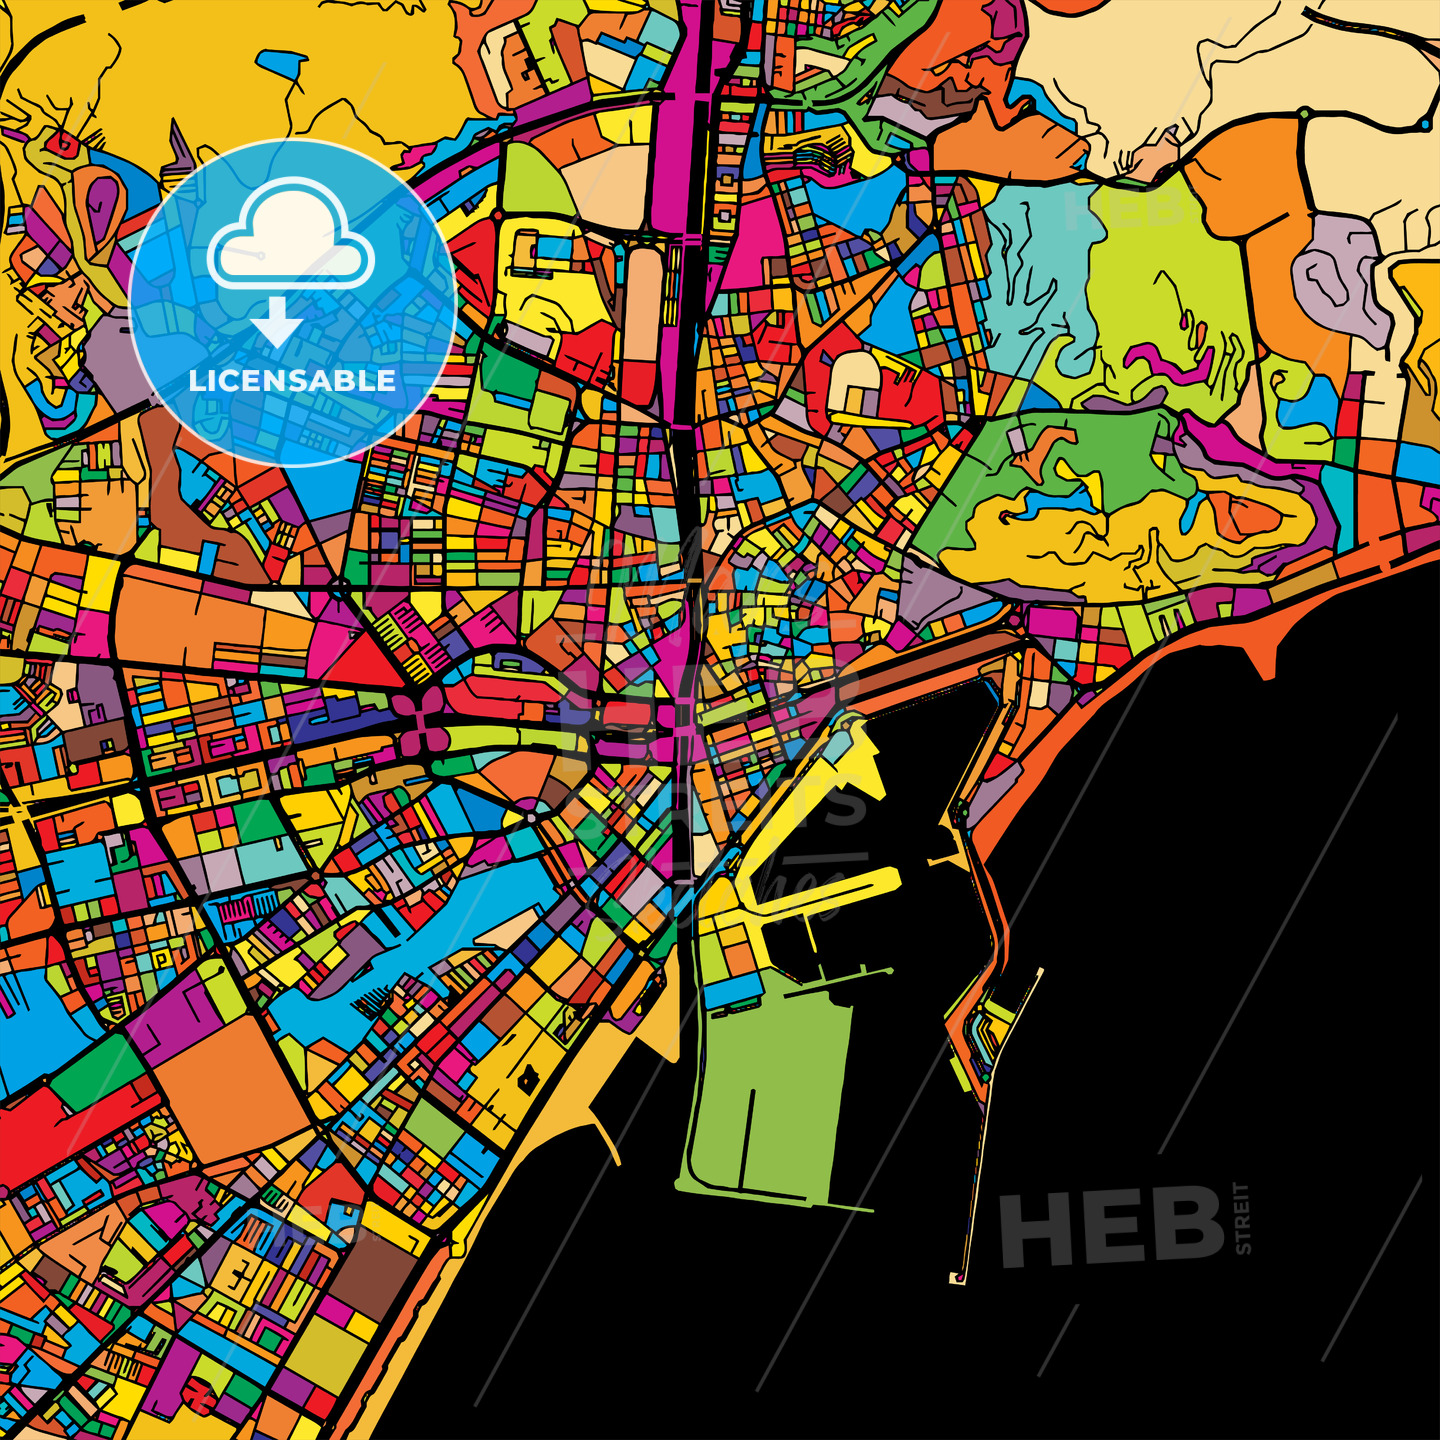 Malaga Colorful Vector Map on Black - HEBSTREIT's Sketches